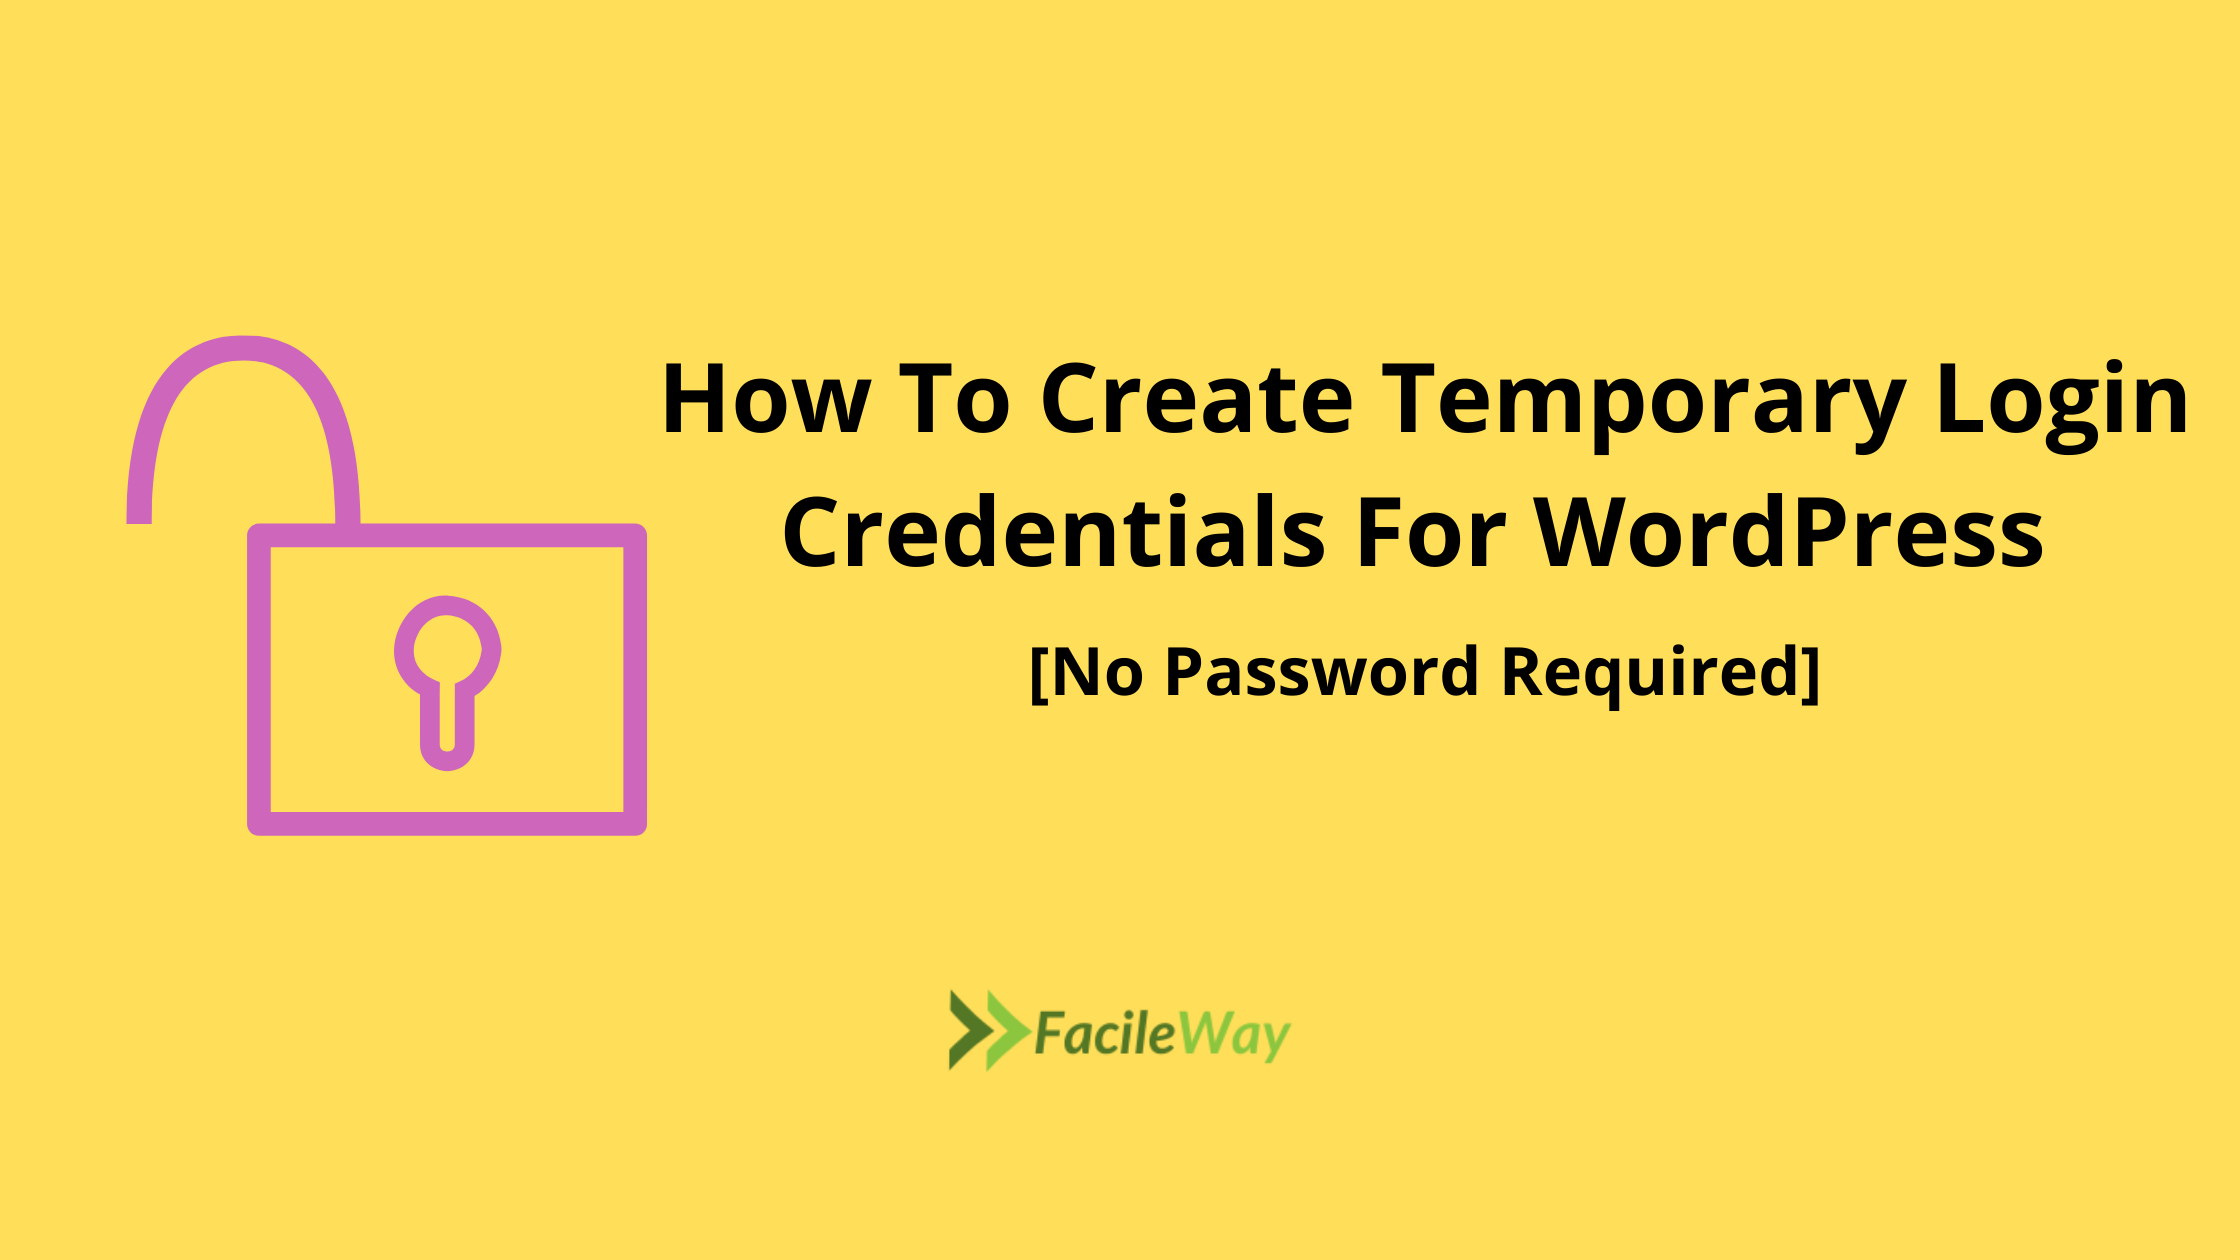 How To Create Temporary Login Credentials For WordPress